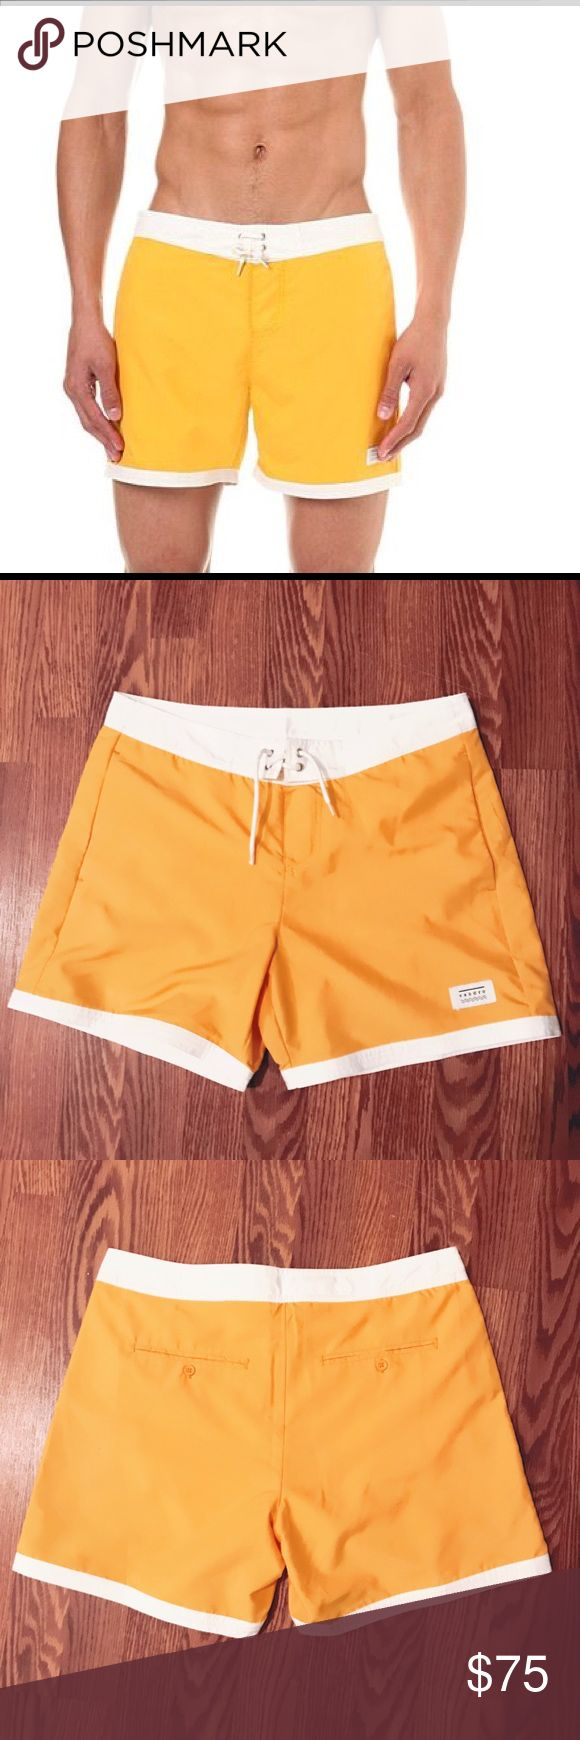 NWT SANDRO YELLOW LEROY SWIM SHORTS SIZE SMALL Designer: Sandro Description: Leroy Swim Shorts Size: Small Color: Yellow Original Price: $165 Condition: new with tags More Details: Velcro and lace up fly, 2 side slit pockets, integrated mesh briefs, 100% polyester, machine wash, made in China. Sandro Swim Swim Trunks